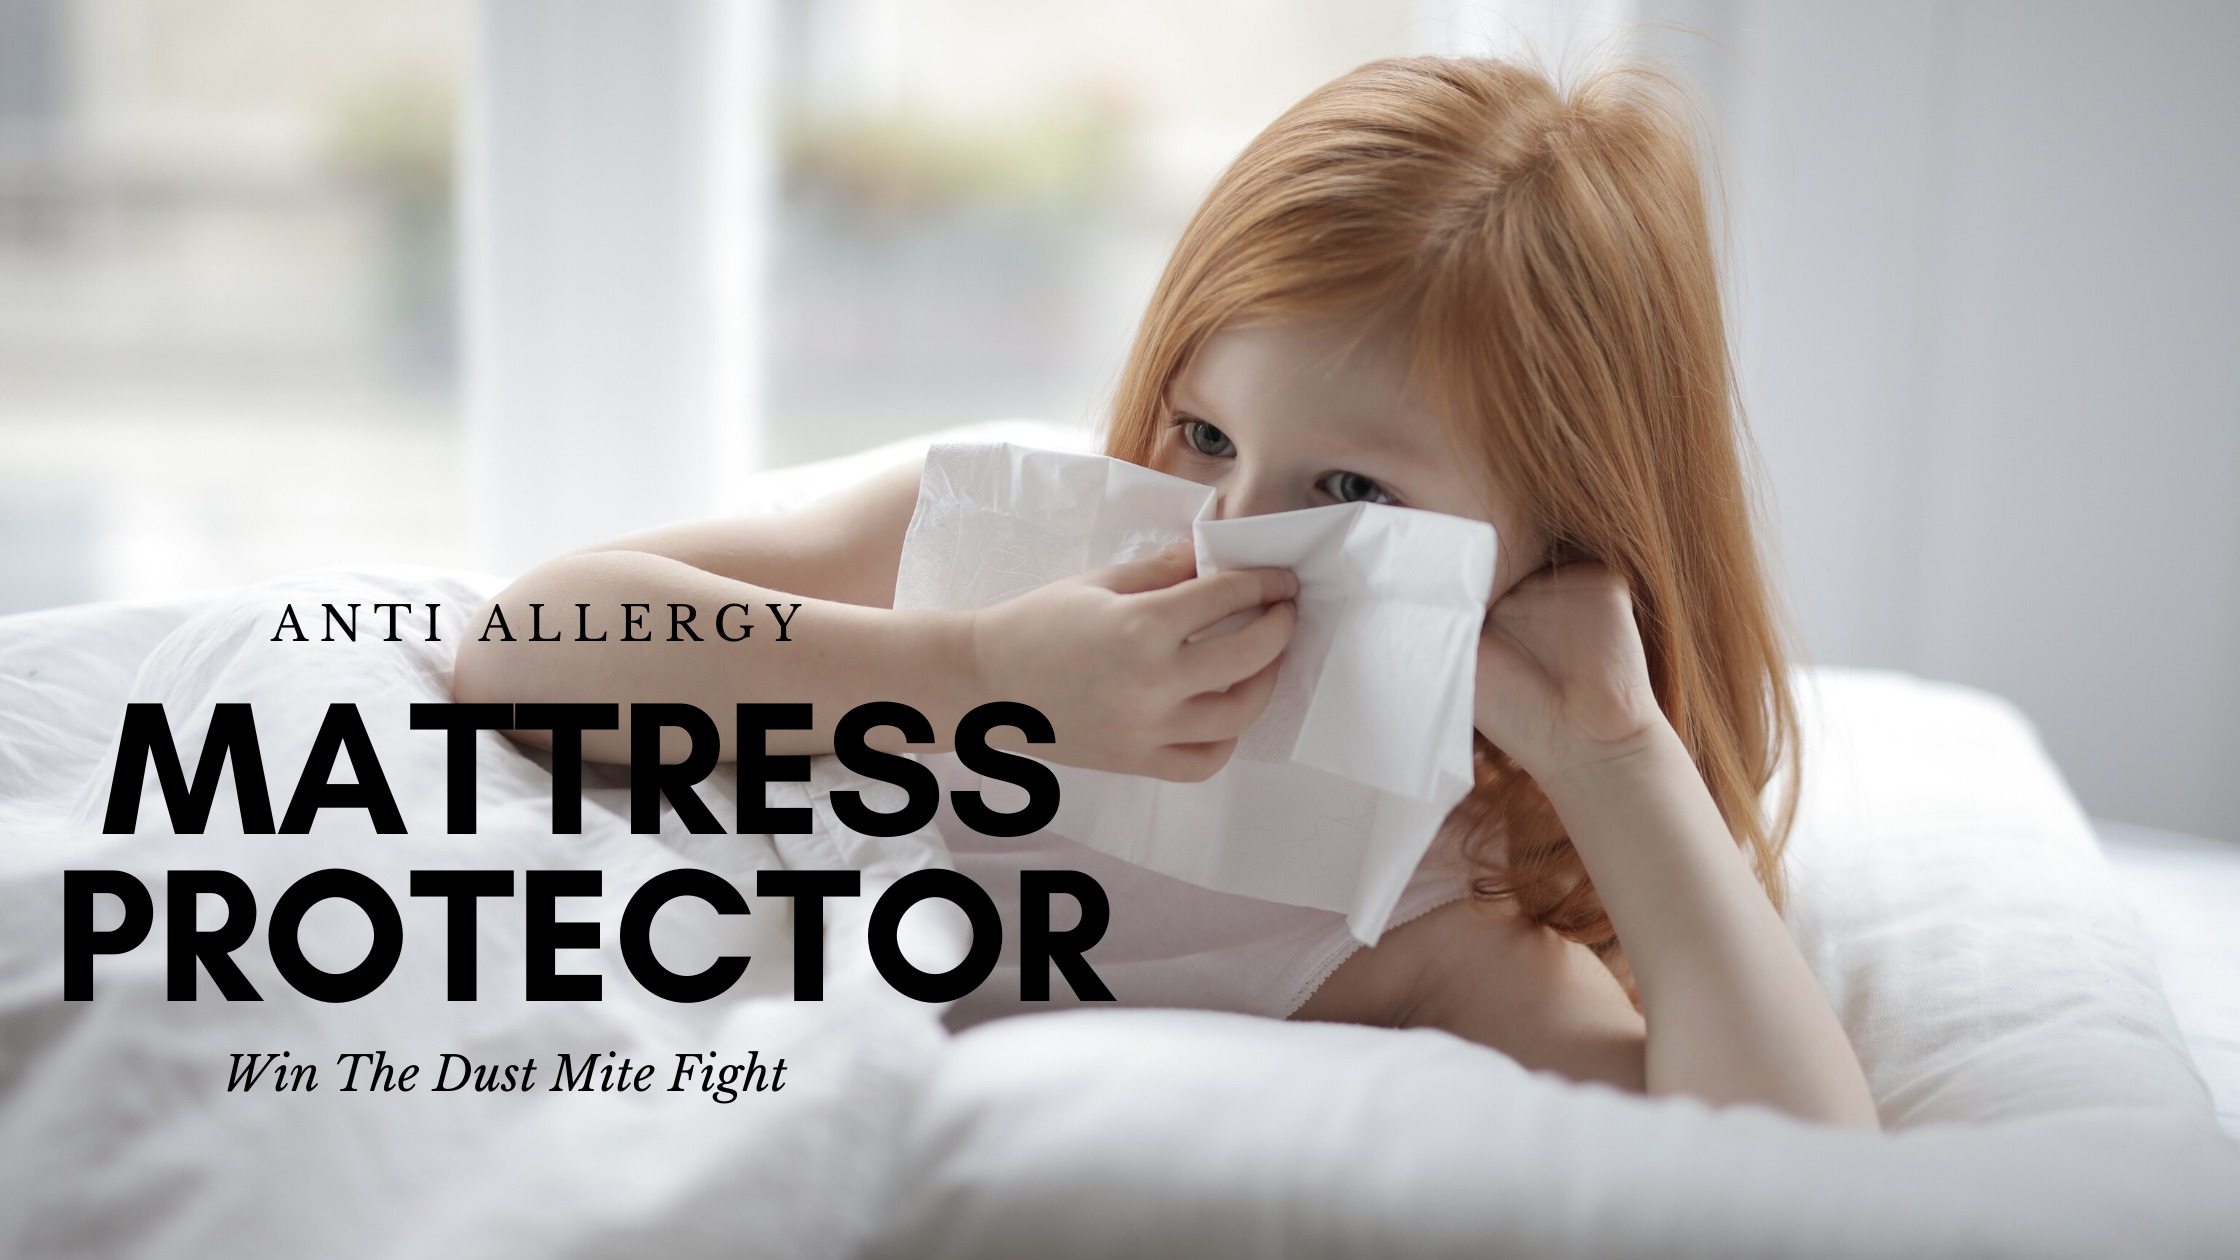 Anti Allergy Mattress Protector - Cover Image